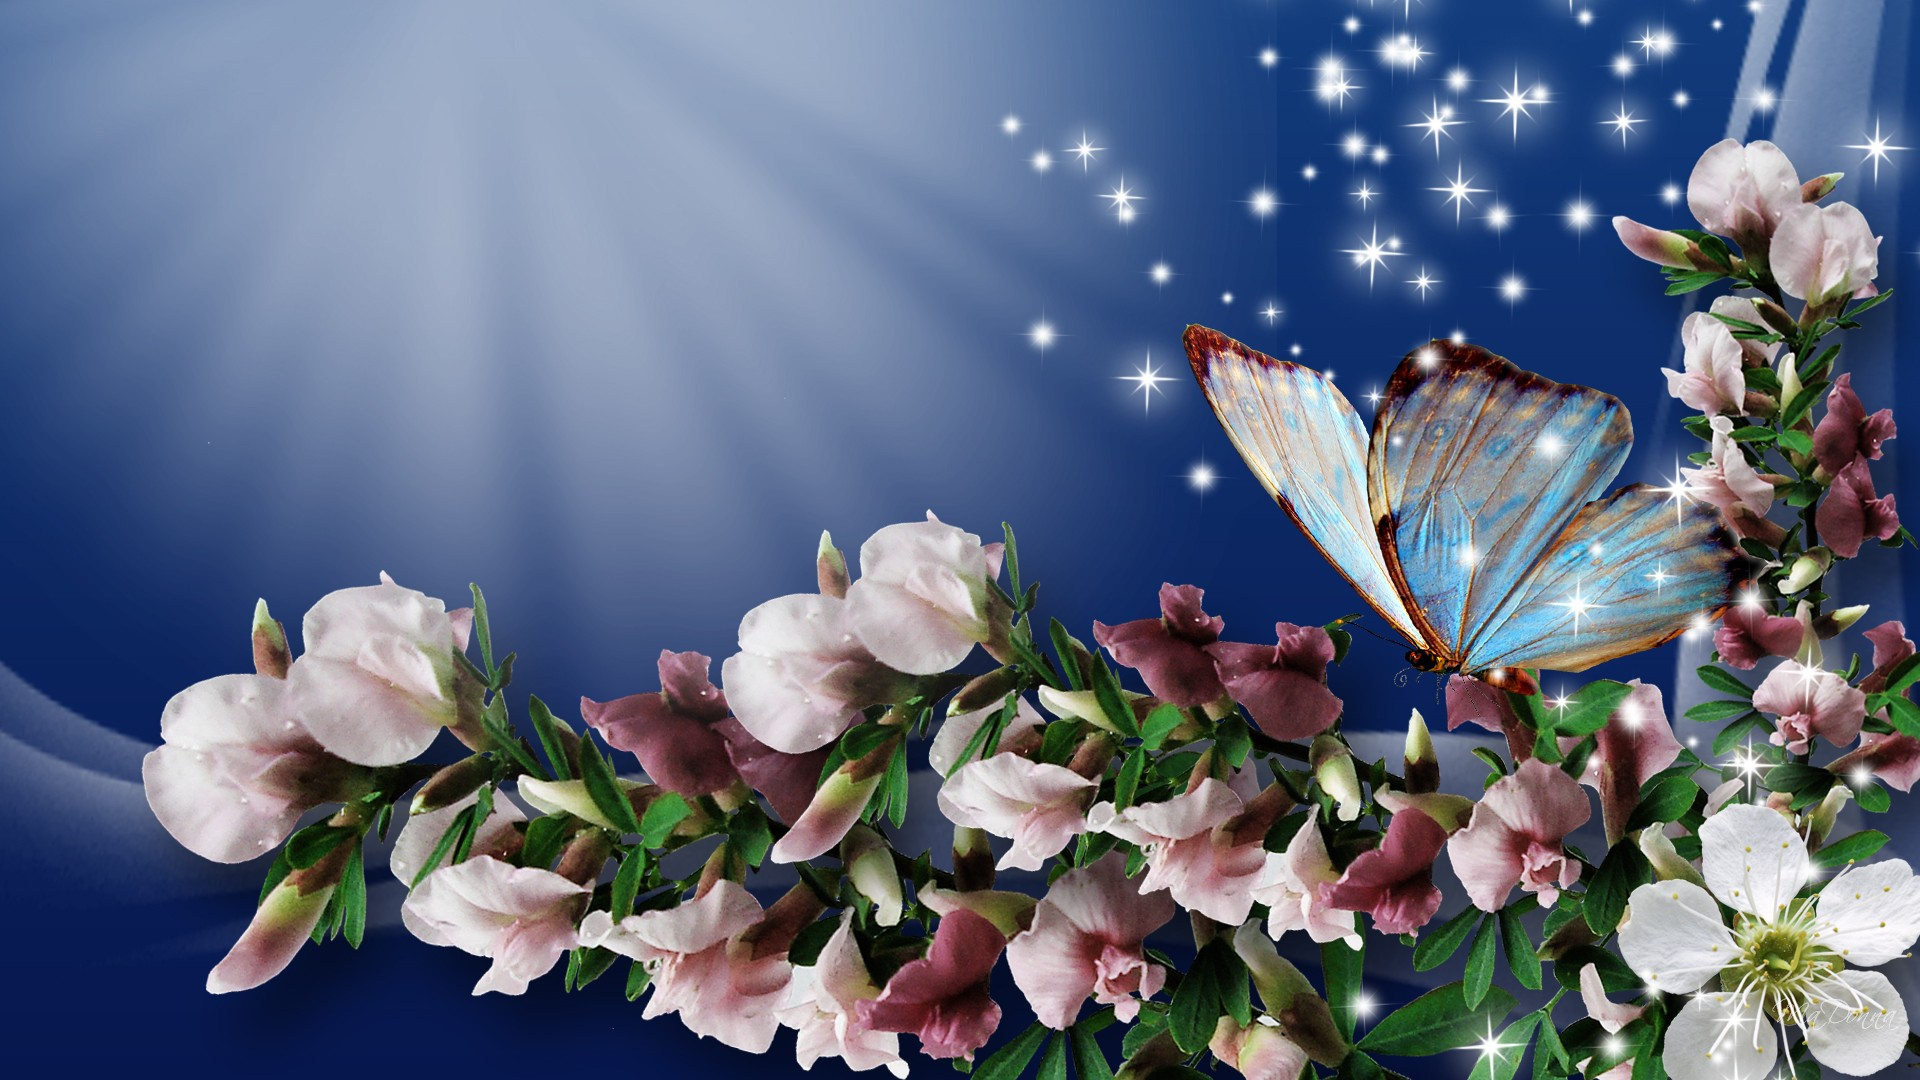 the spring wallpapers category of hd wallpapers desktop spring 1920x1080